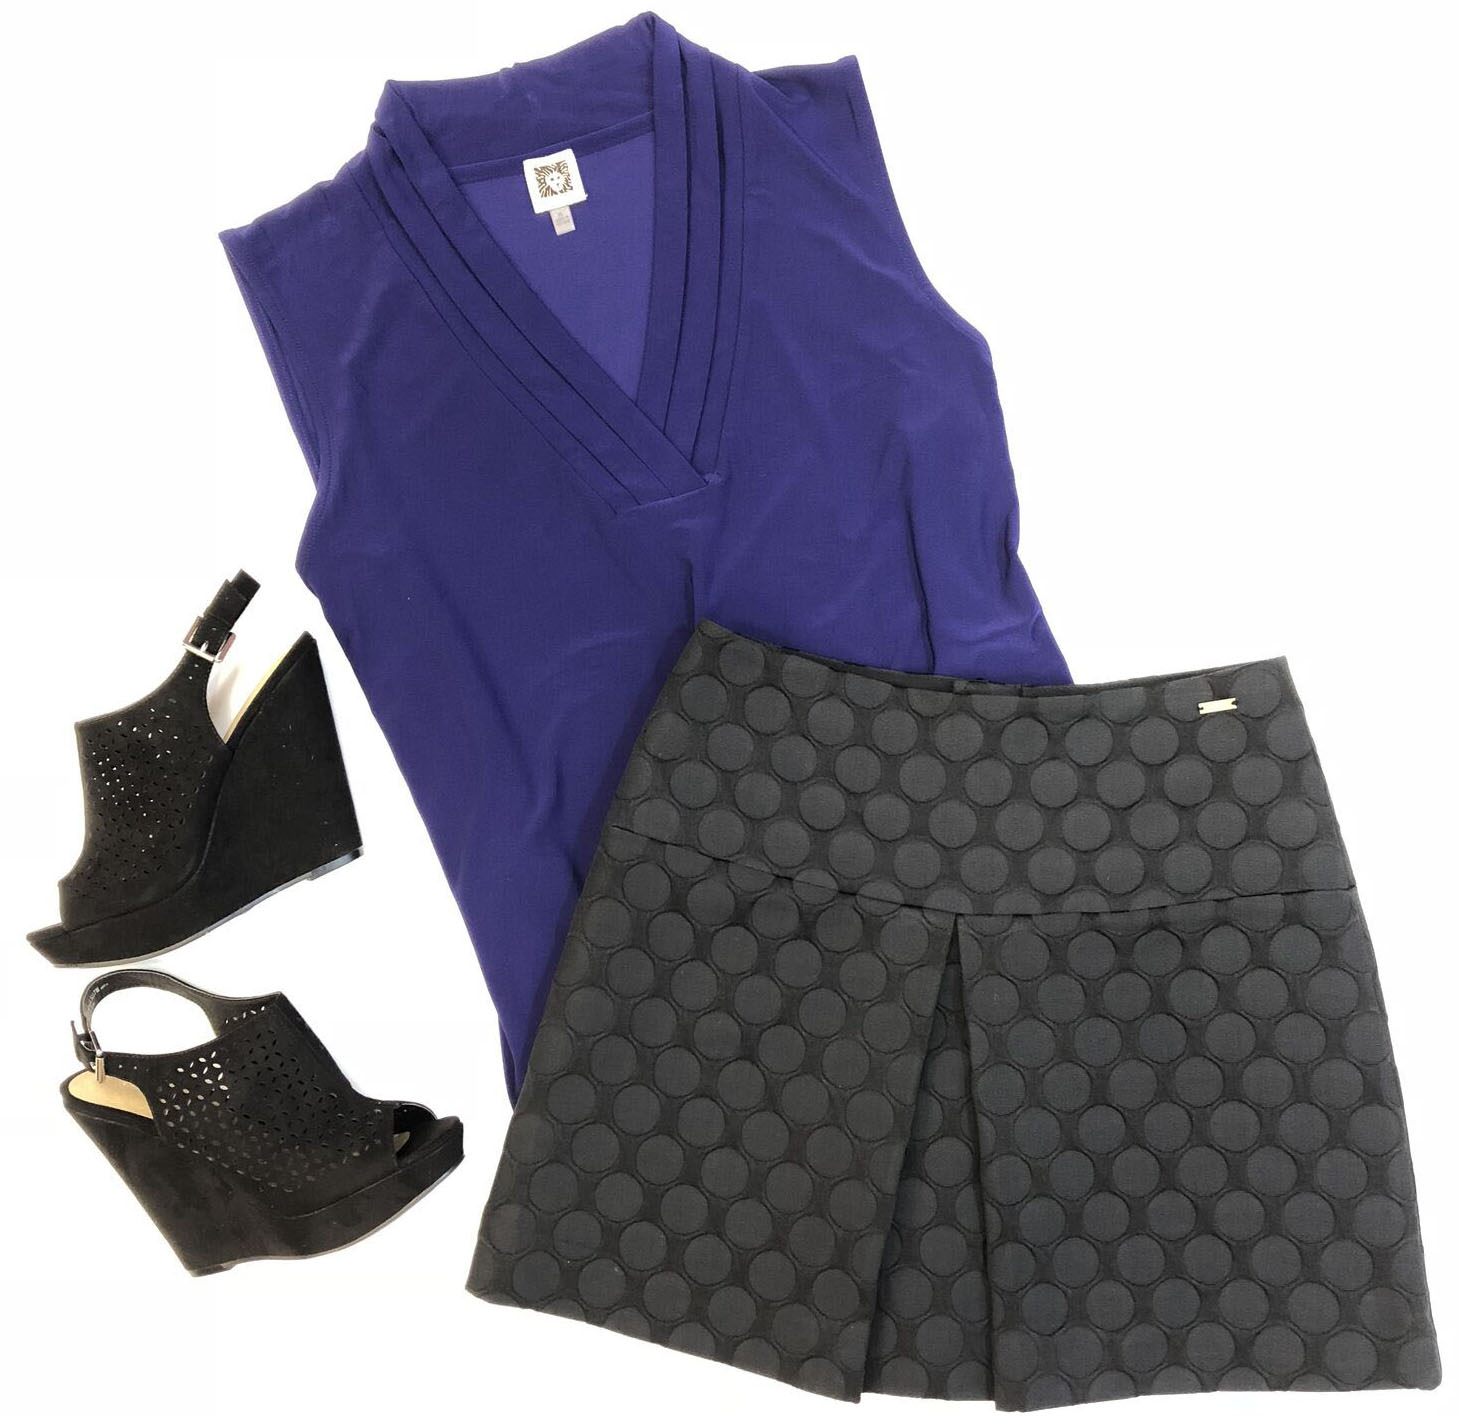 Armani Exchange Skirt – Original Retail: $94, CWS: $20